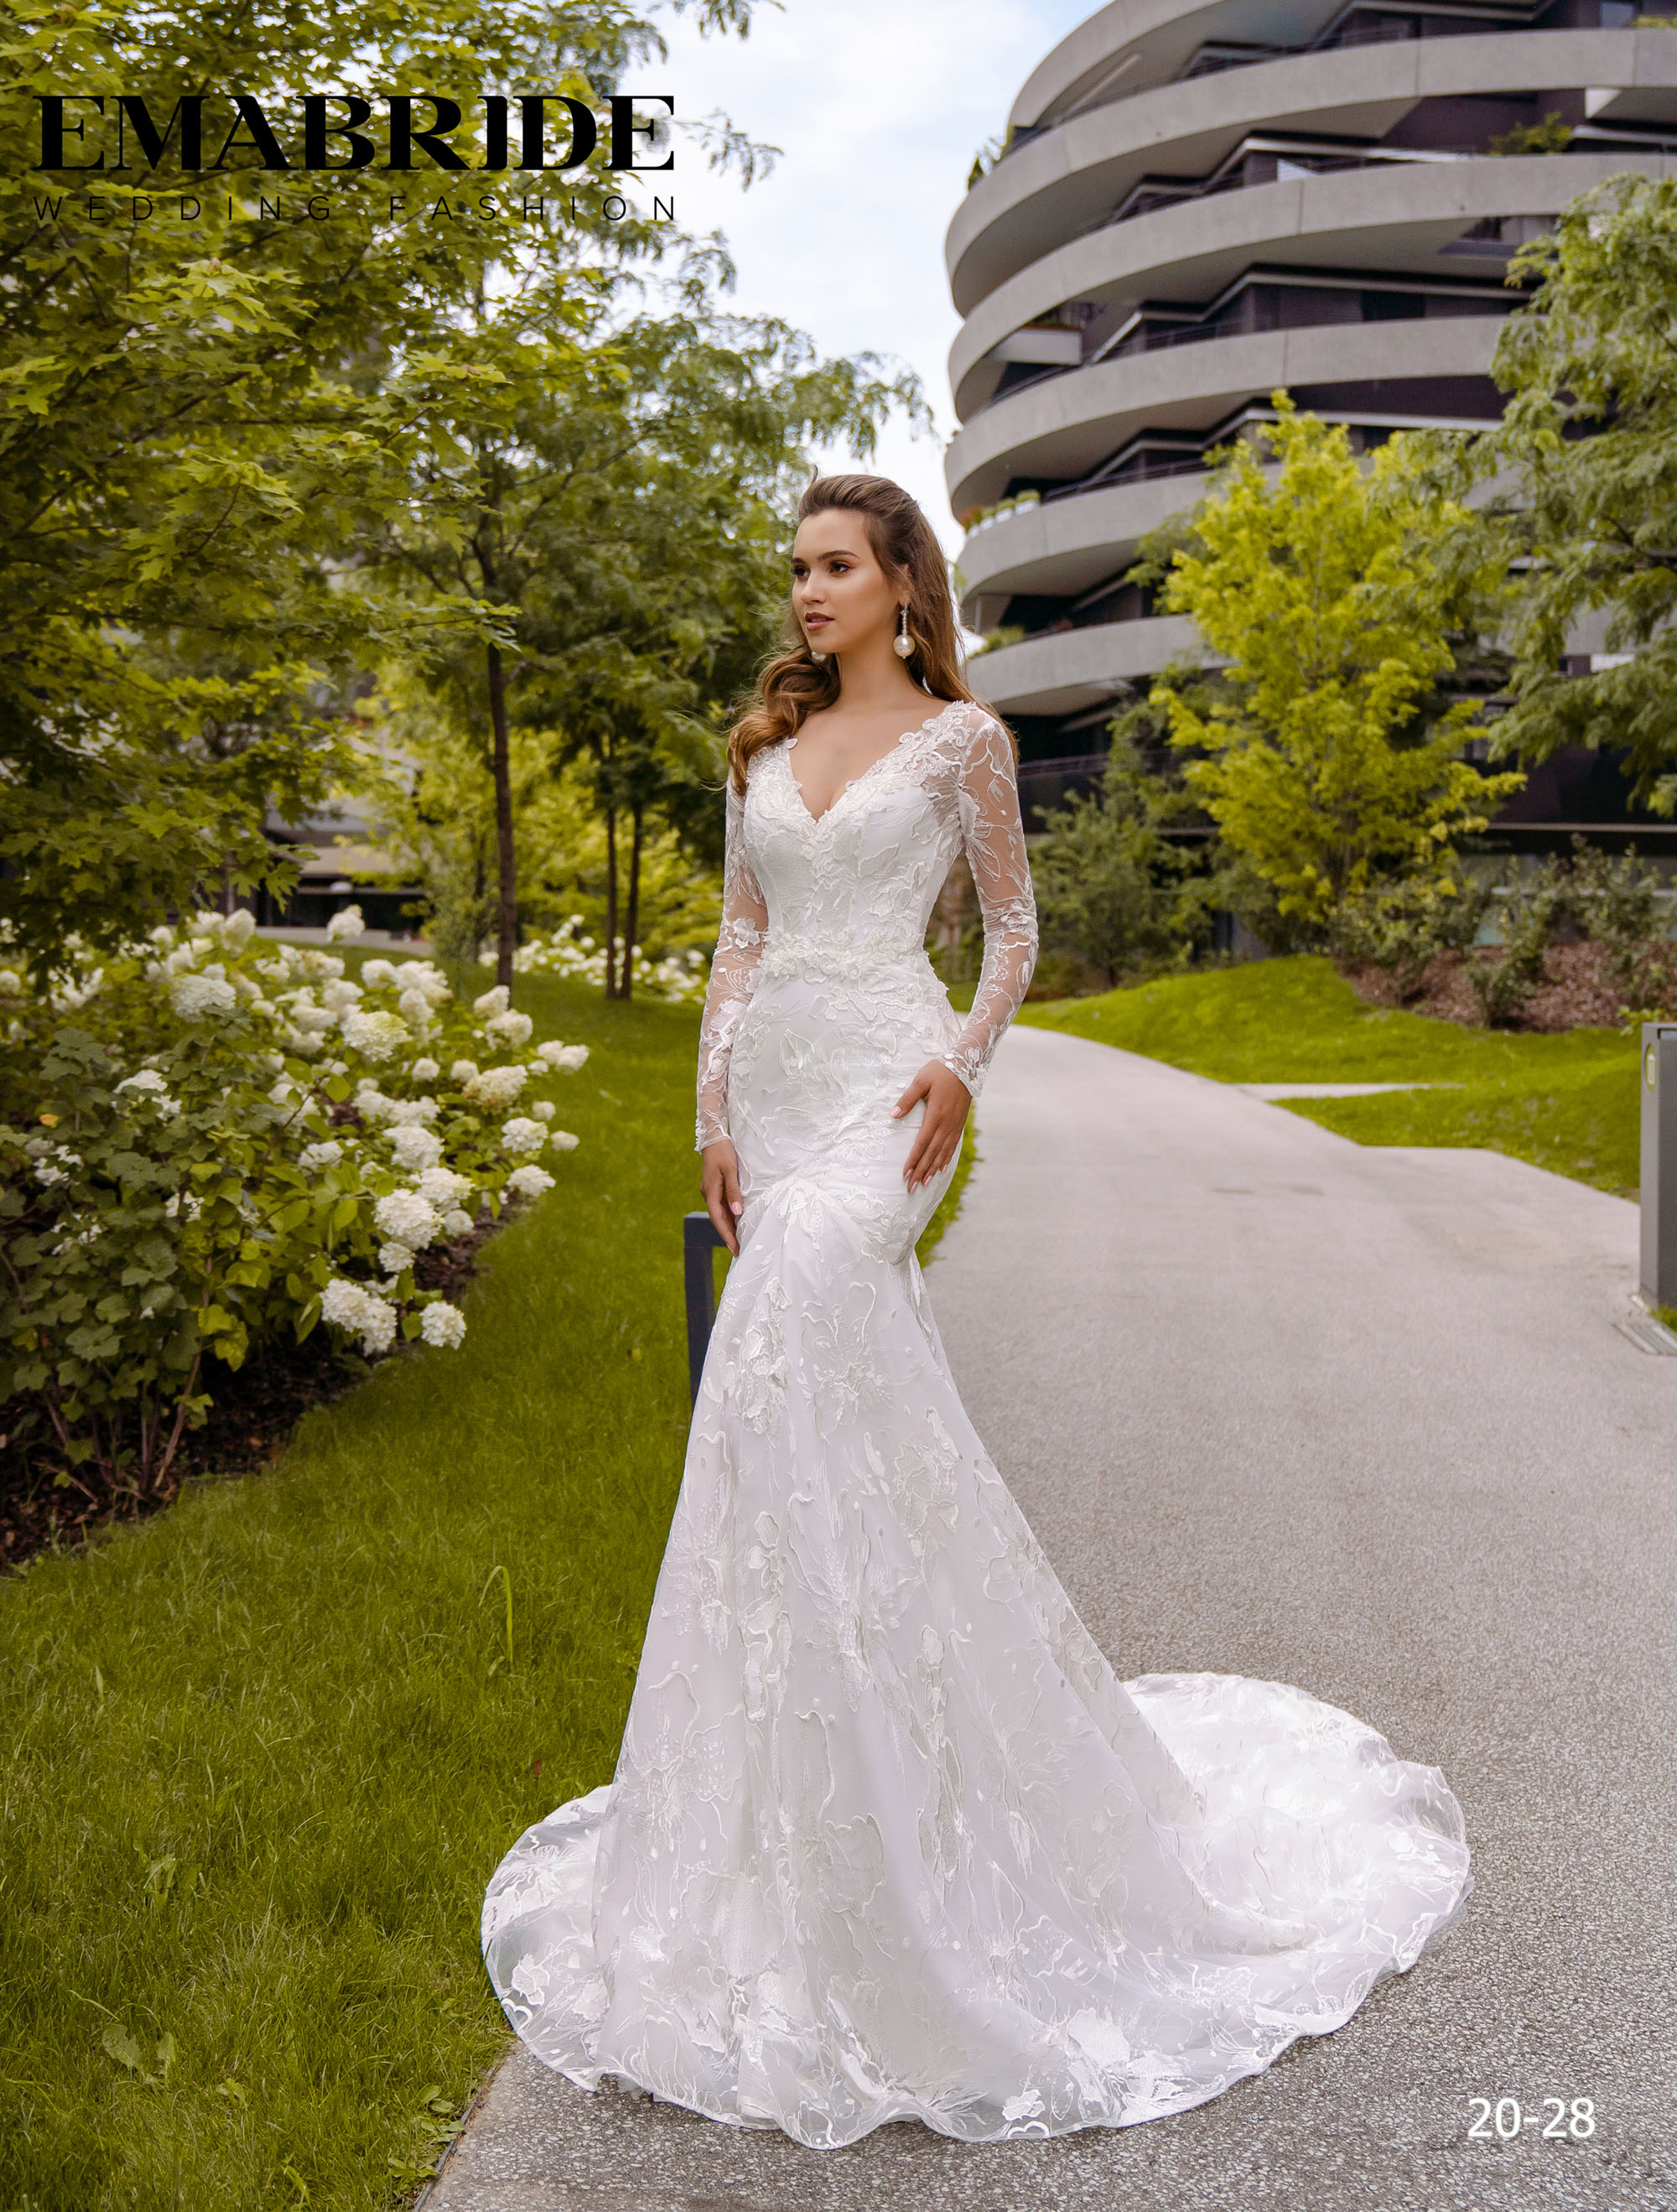 Model 20-28 | Buy wedding dresses wholesale by the ukrainian manufacturer Emabride